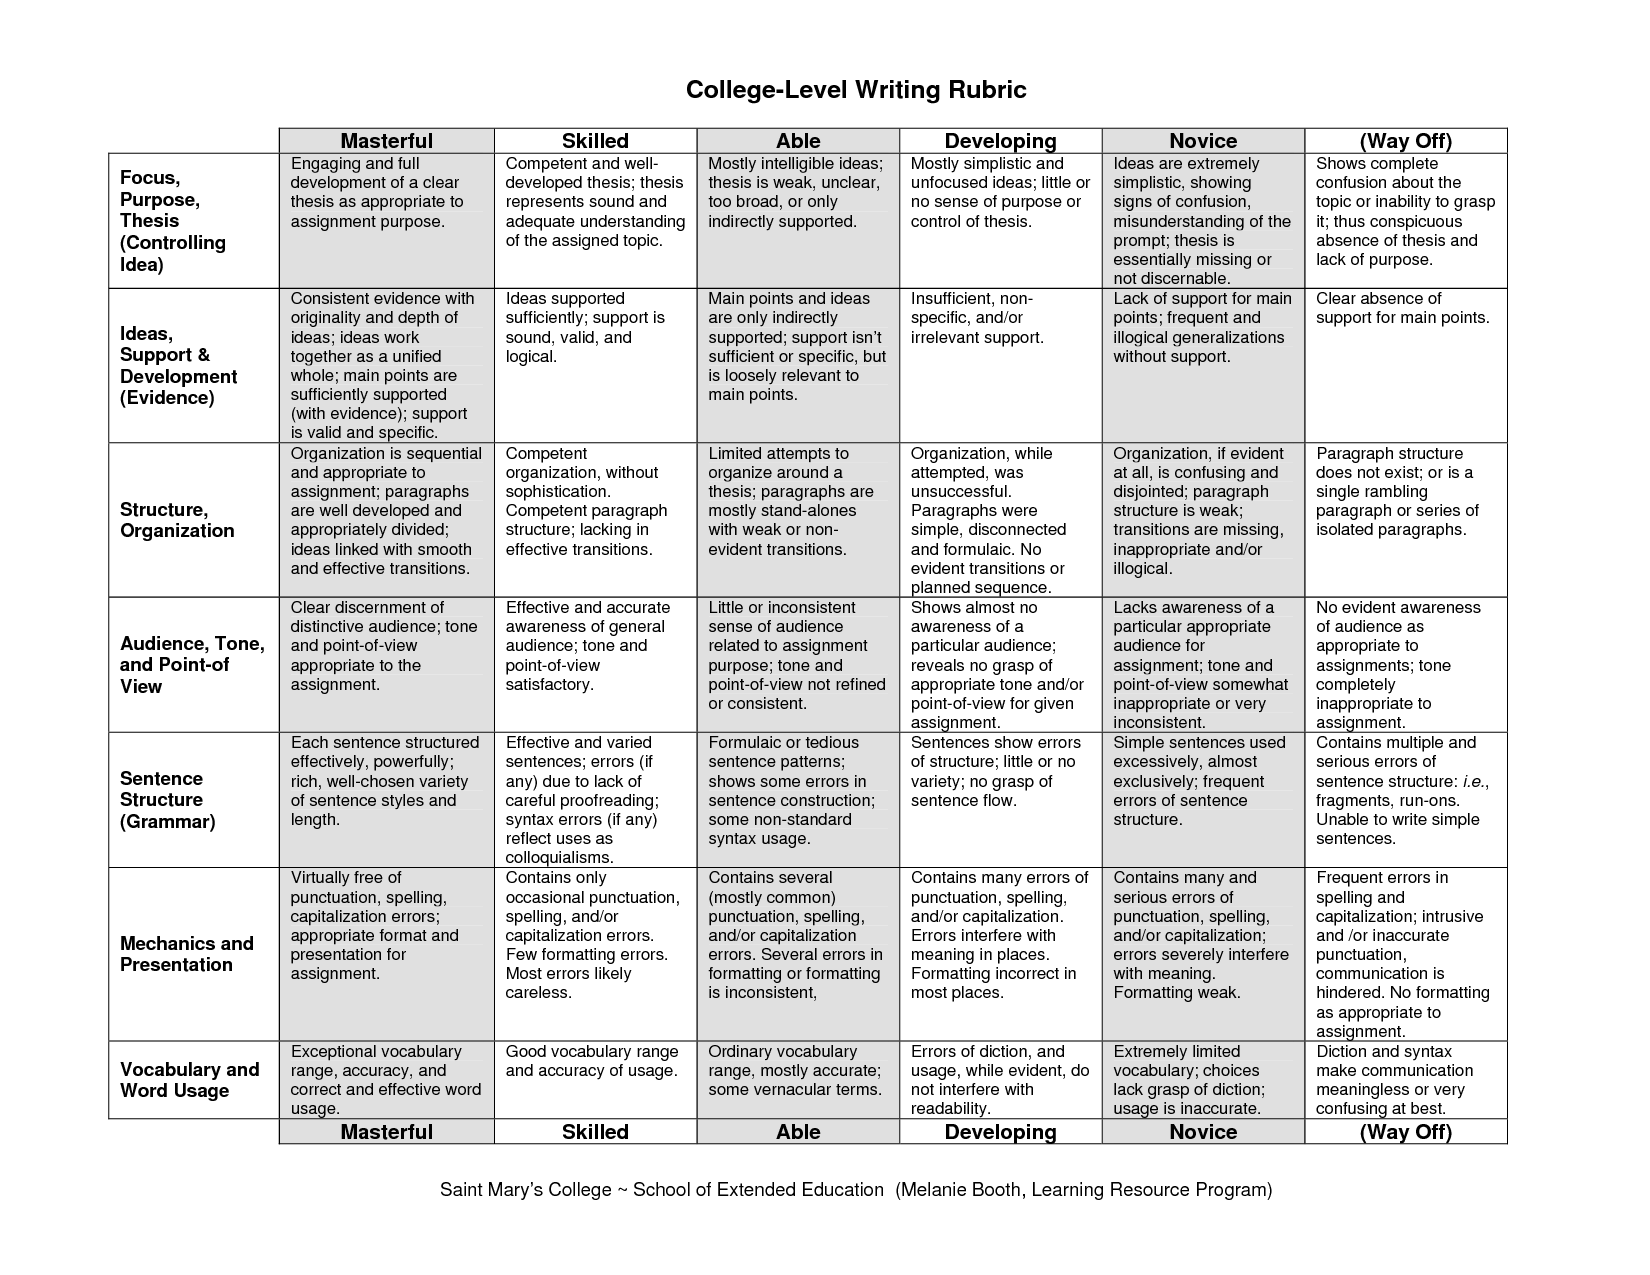 general college level writing rubric from st mary s college general college level writing rubric from st mary s college english department